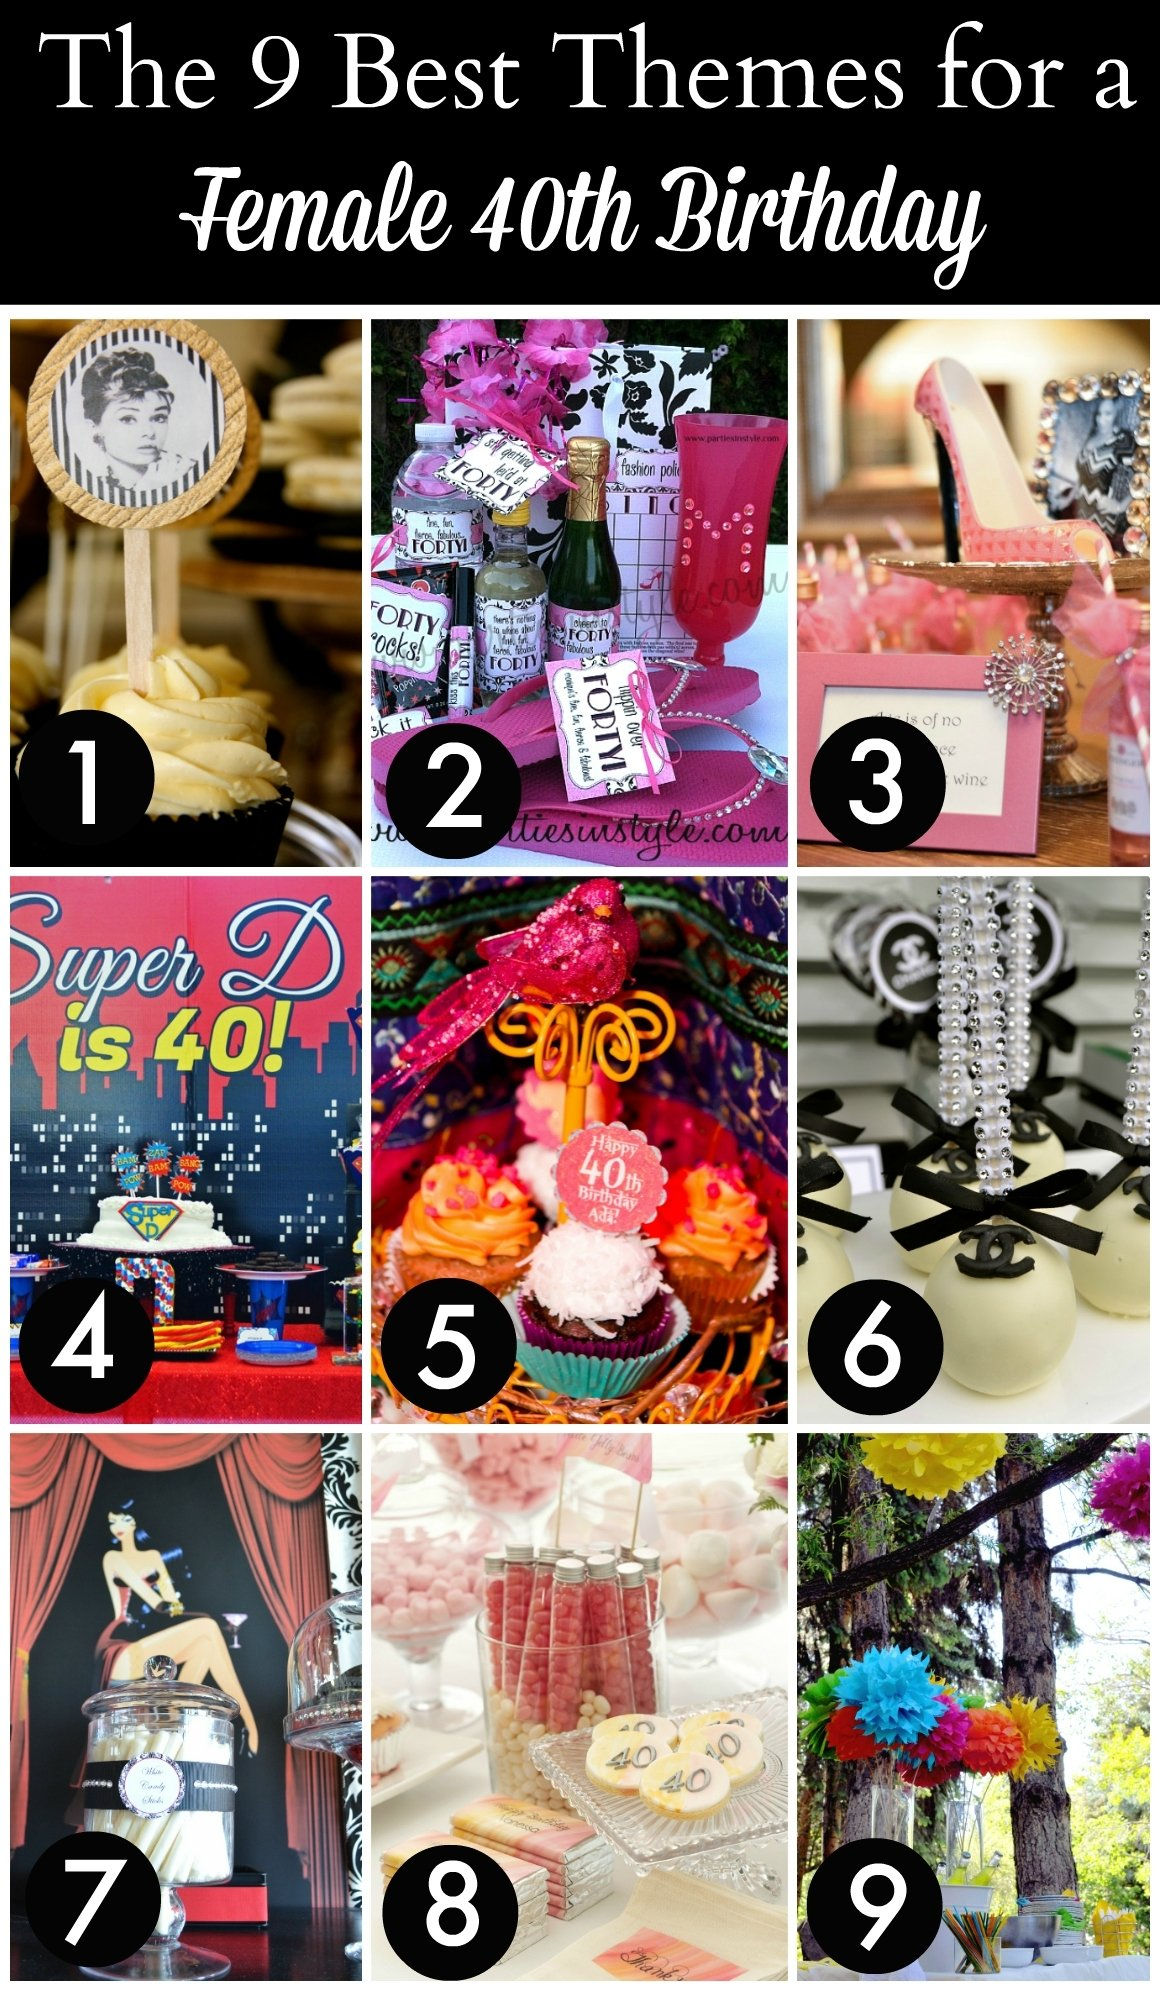 10 Nice Ideas For 40Th Birthday Celebration the 12 best 40th birthday themes for women catch my party 19 2020